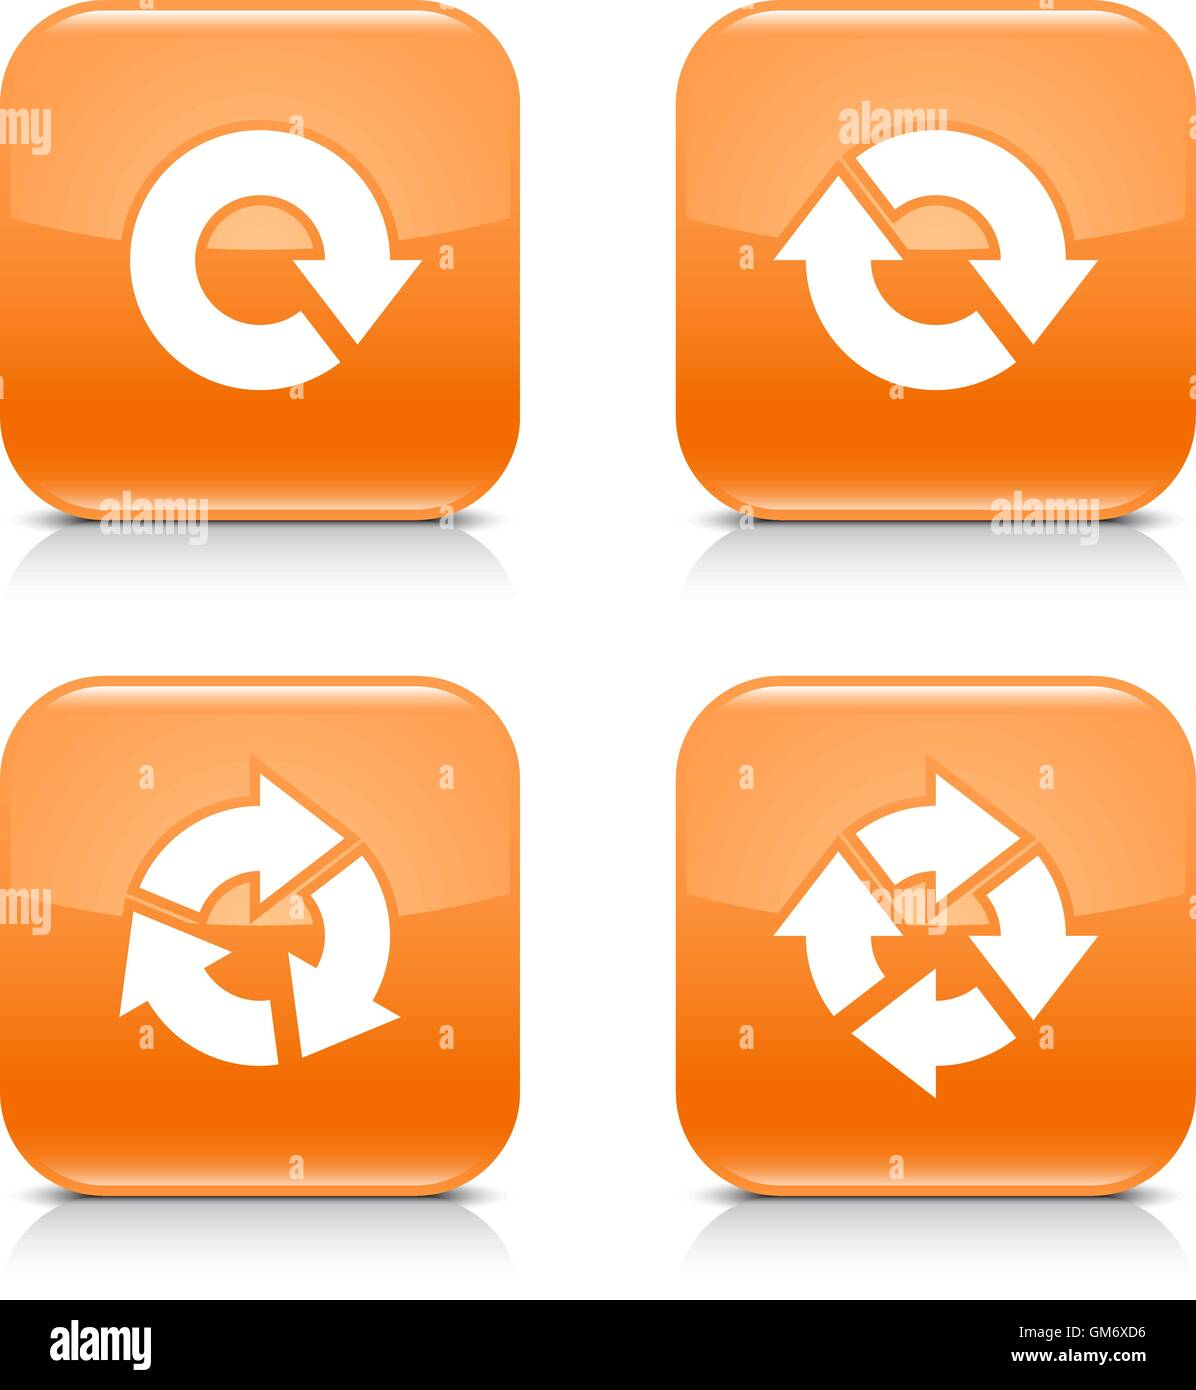 4 arrow icon. White refresh, reload, rotation, repeat sign. Set 04. Orange rounded square button with gray reflection - Stock Image